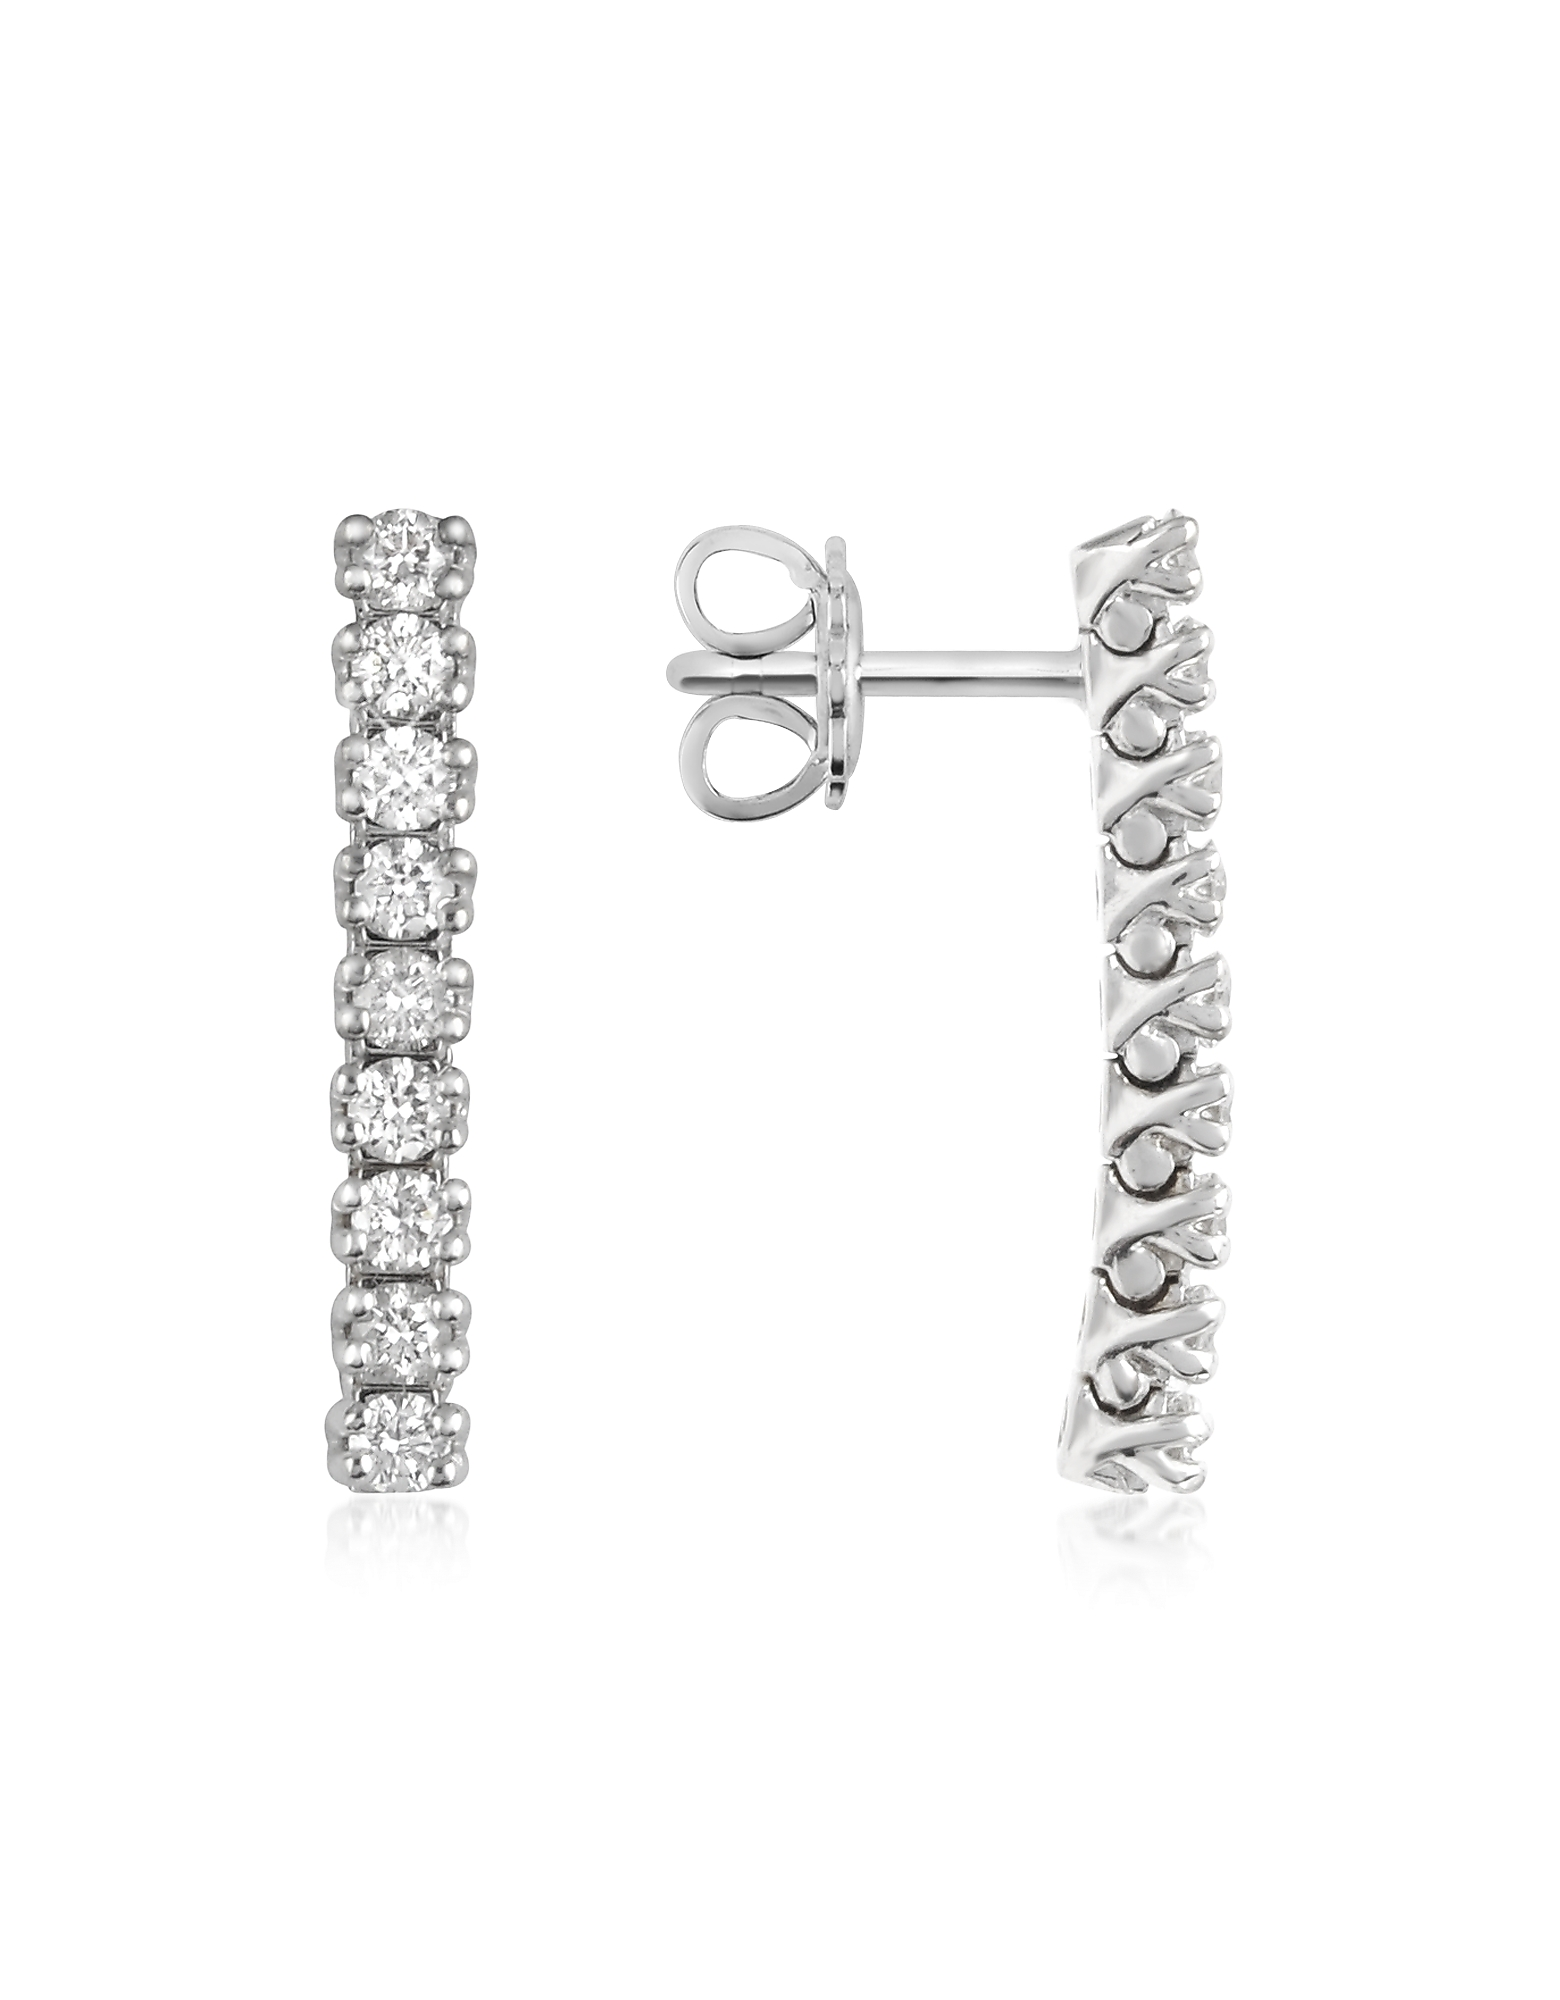 Forzieri Earrings, 0.63 ctw Nine-Stone Drop Diamond 18K Gold Earrings